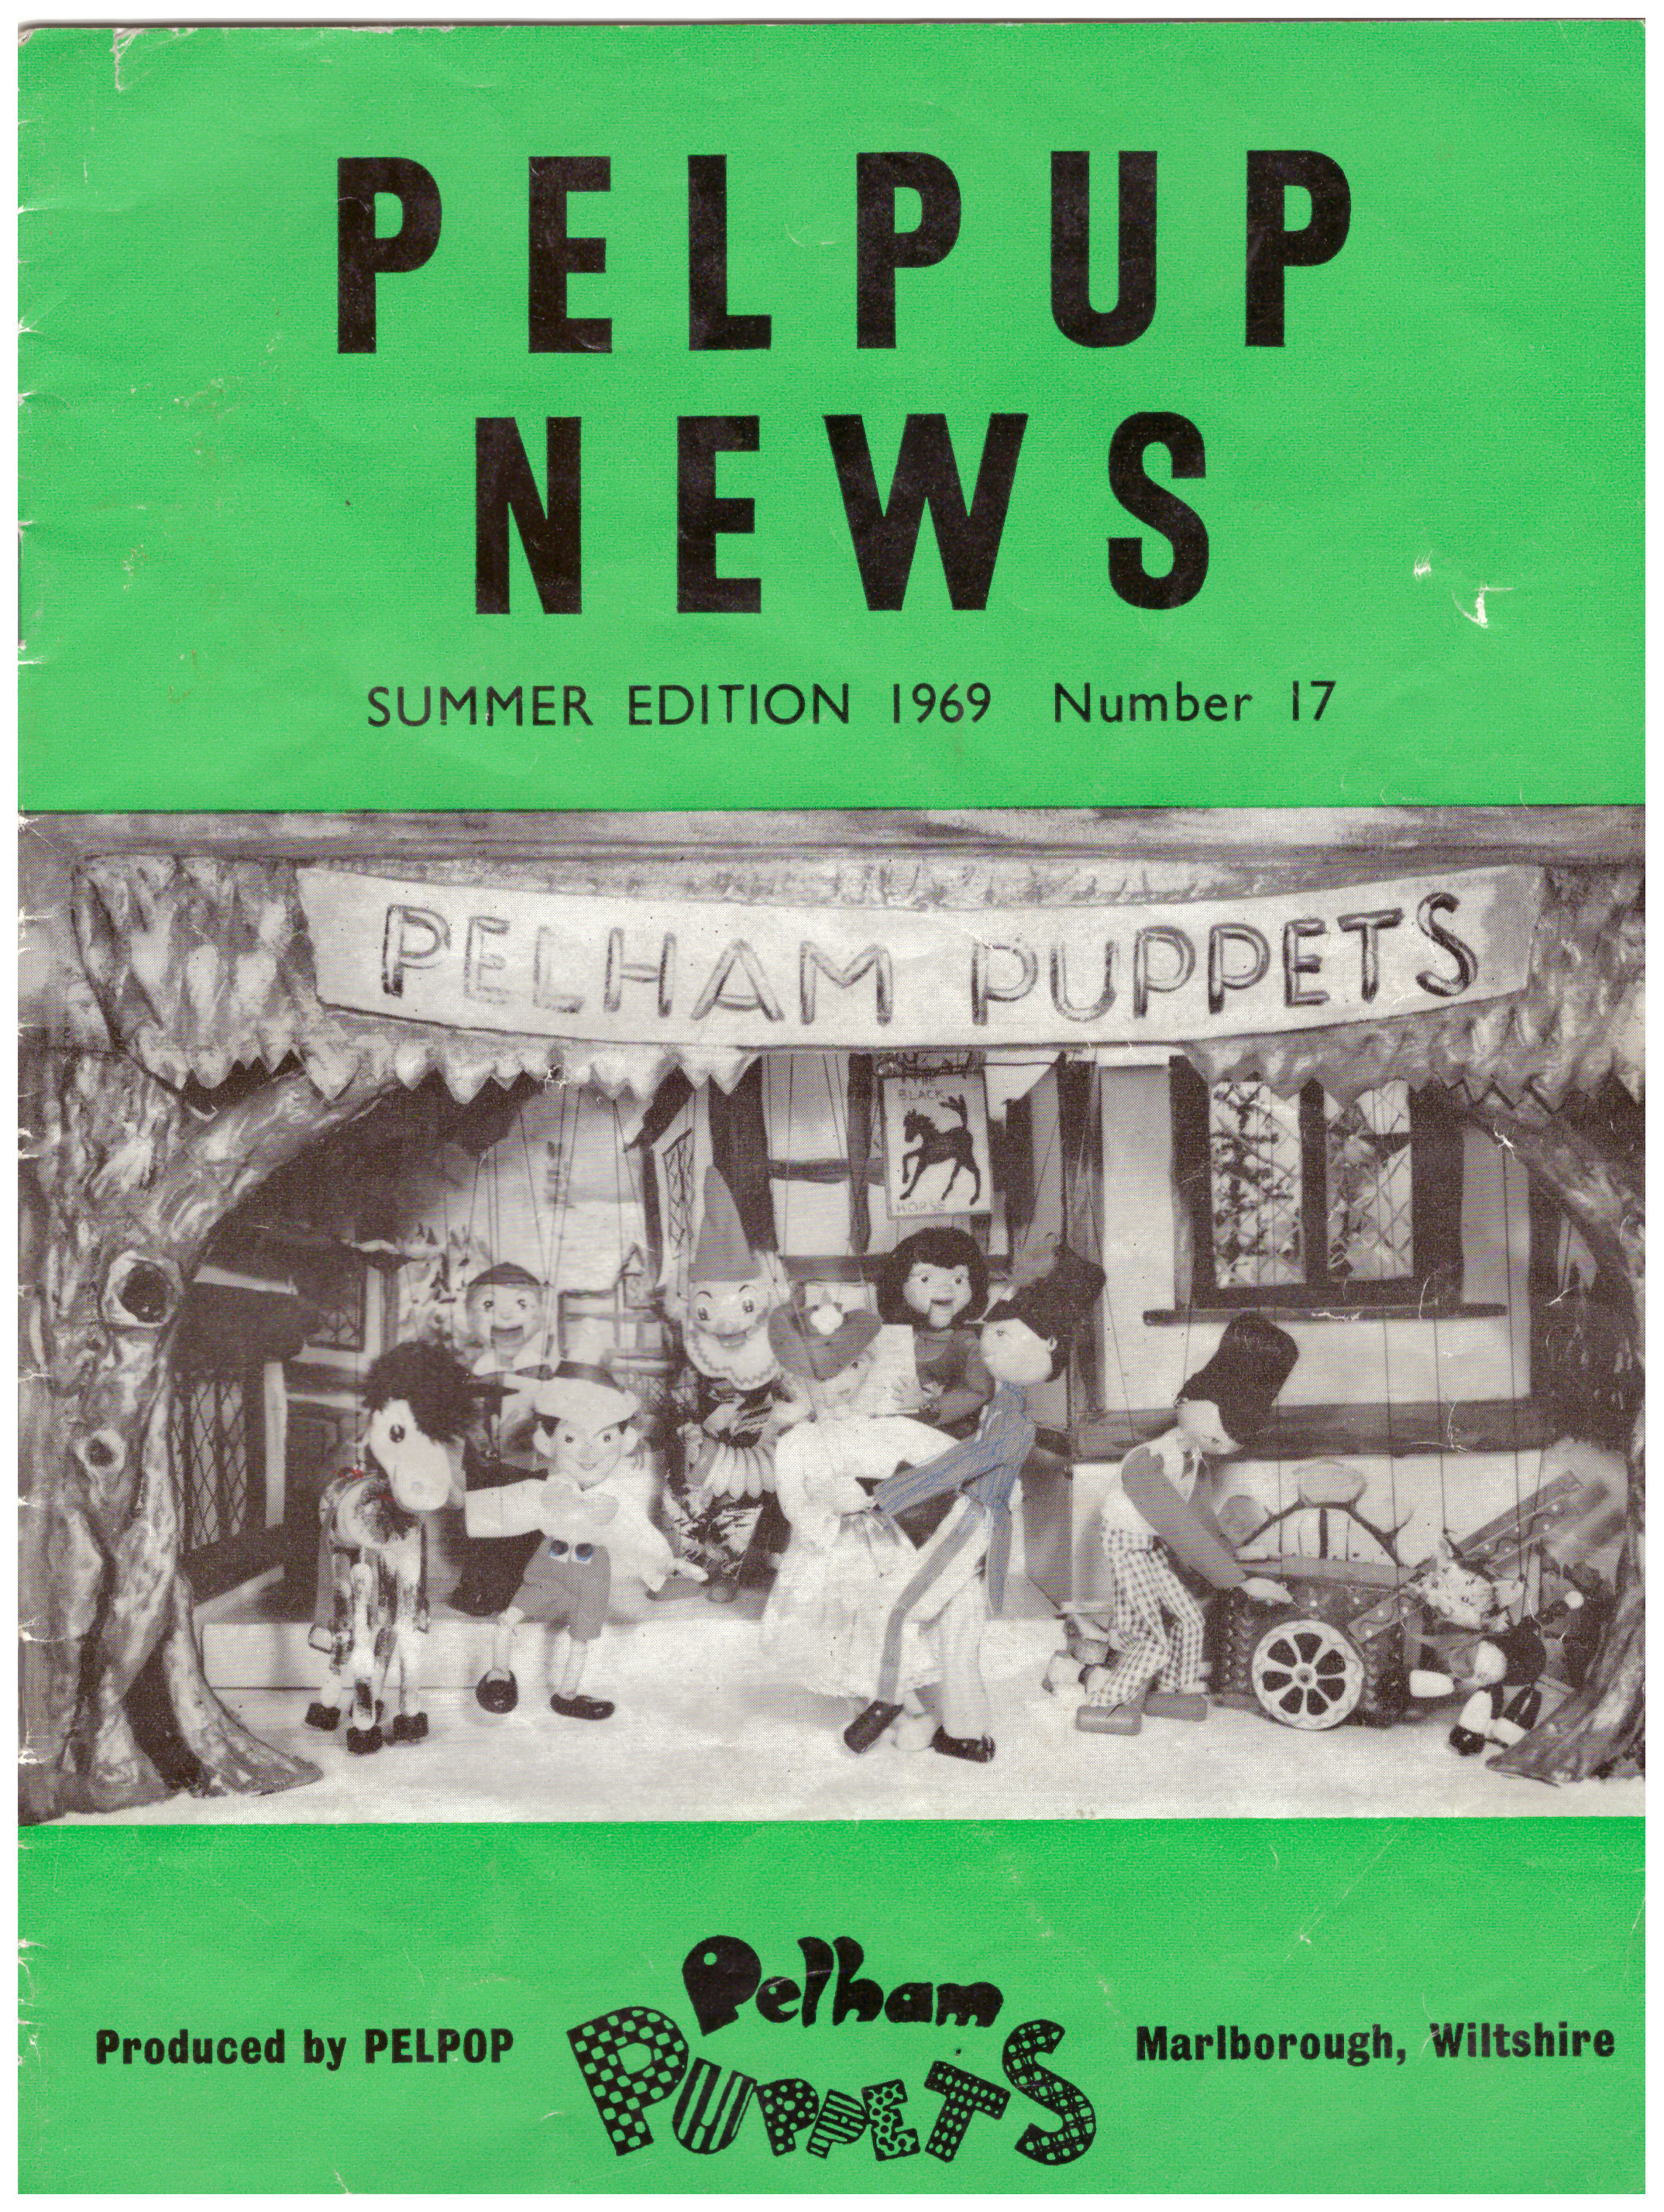 Summer Edition 1969 Number 17